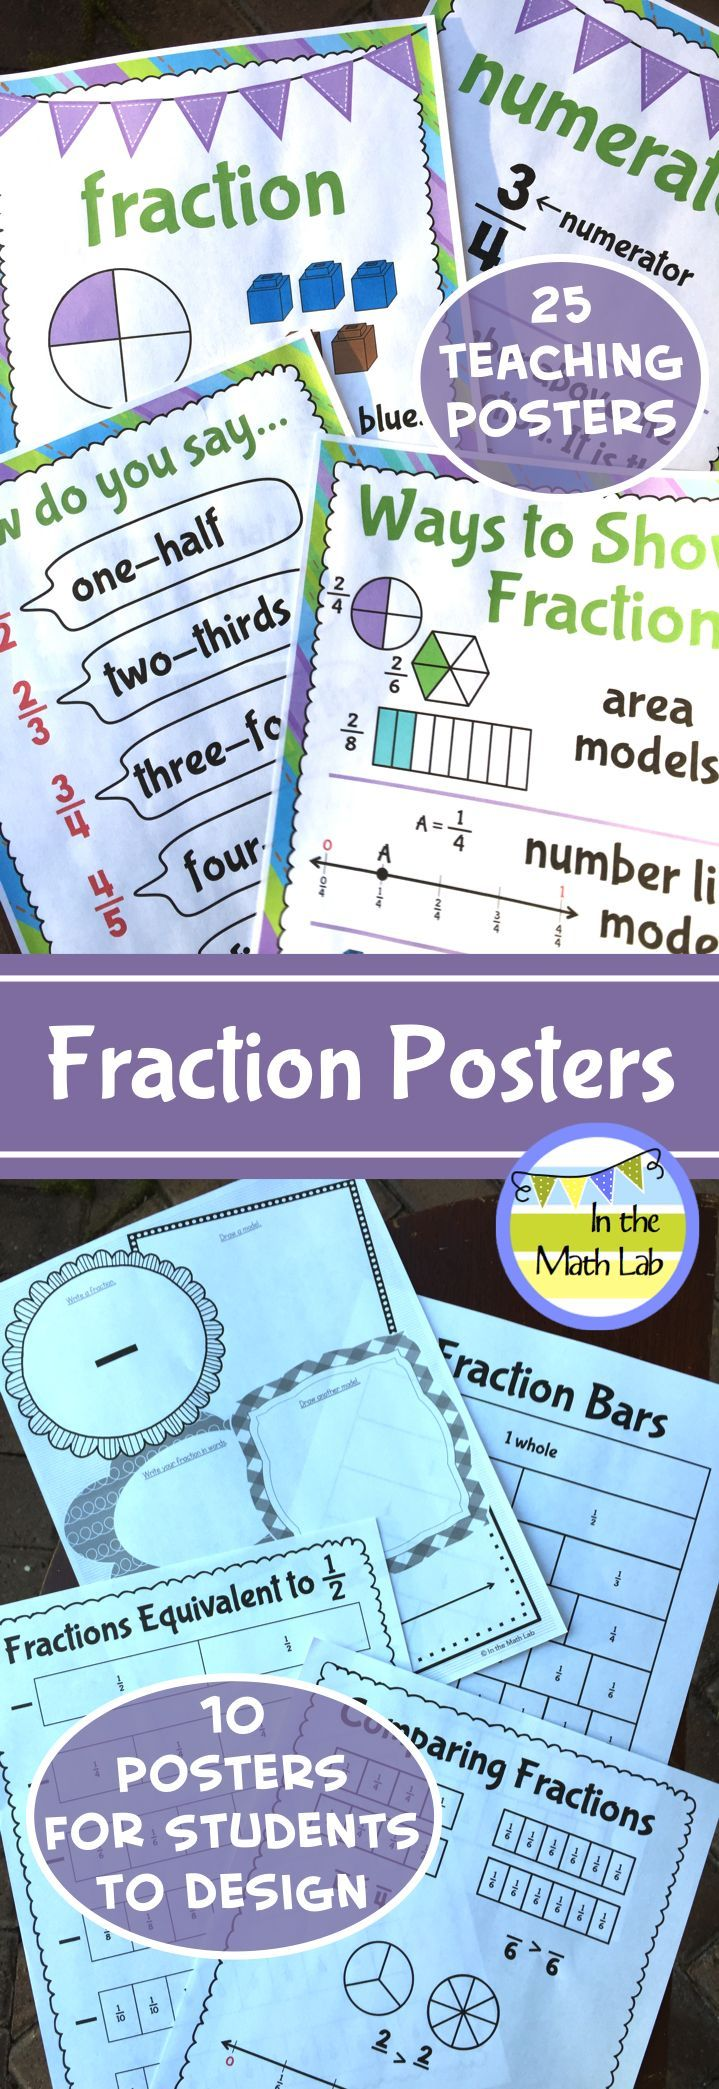 Fraction Posters - Concept and Student Posters | School math ...